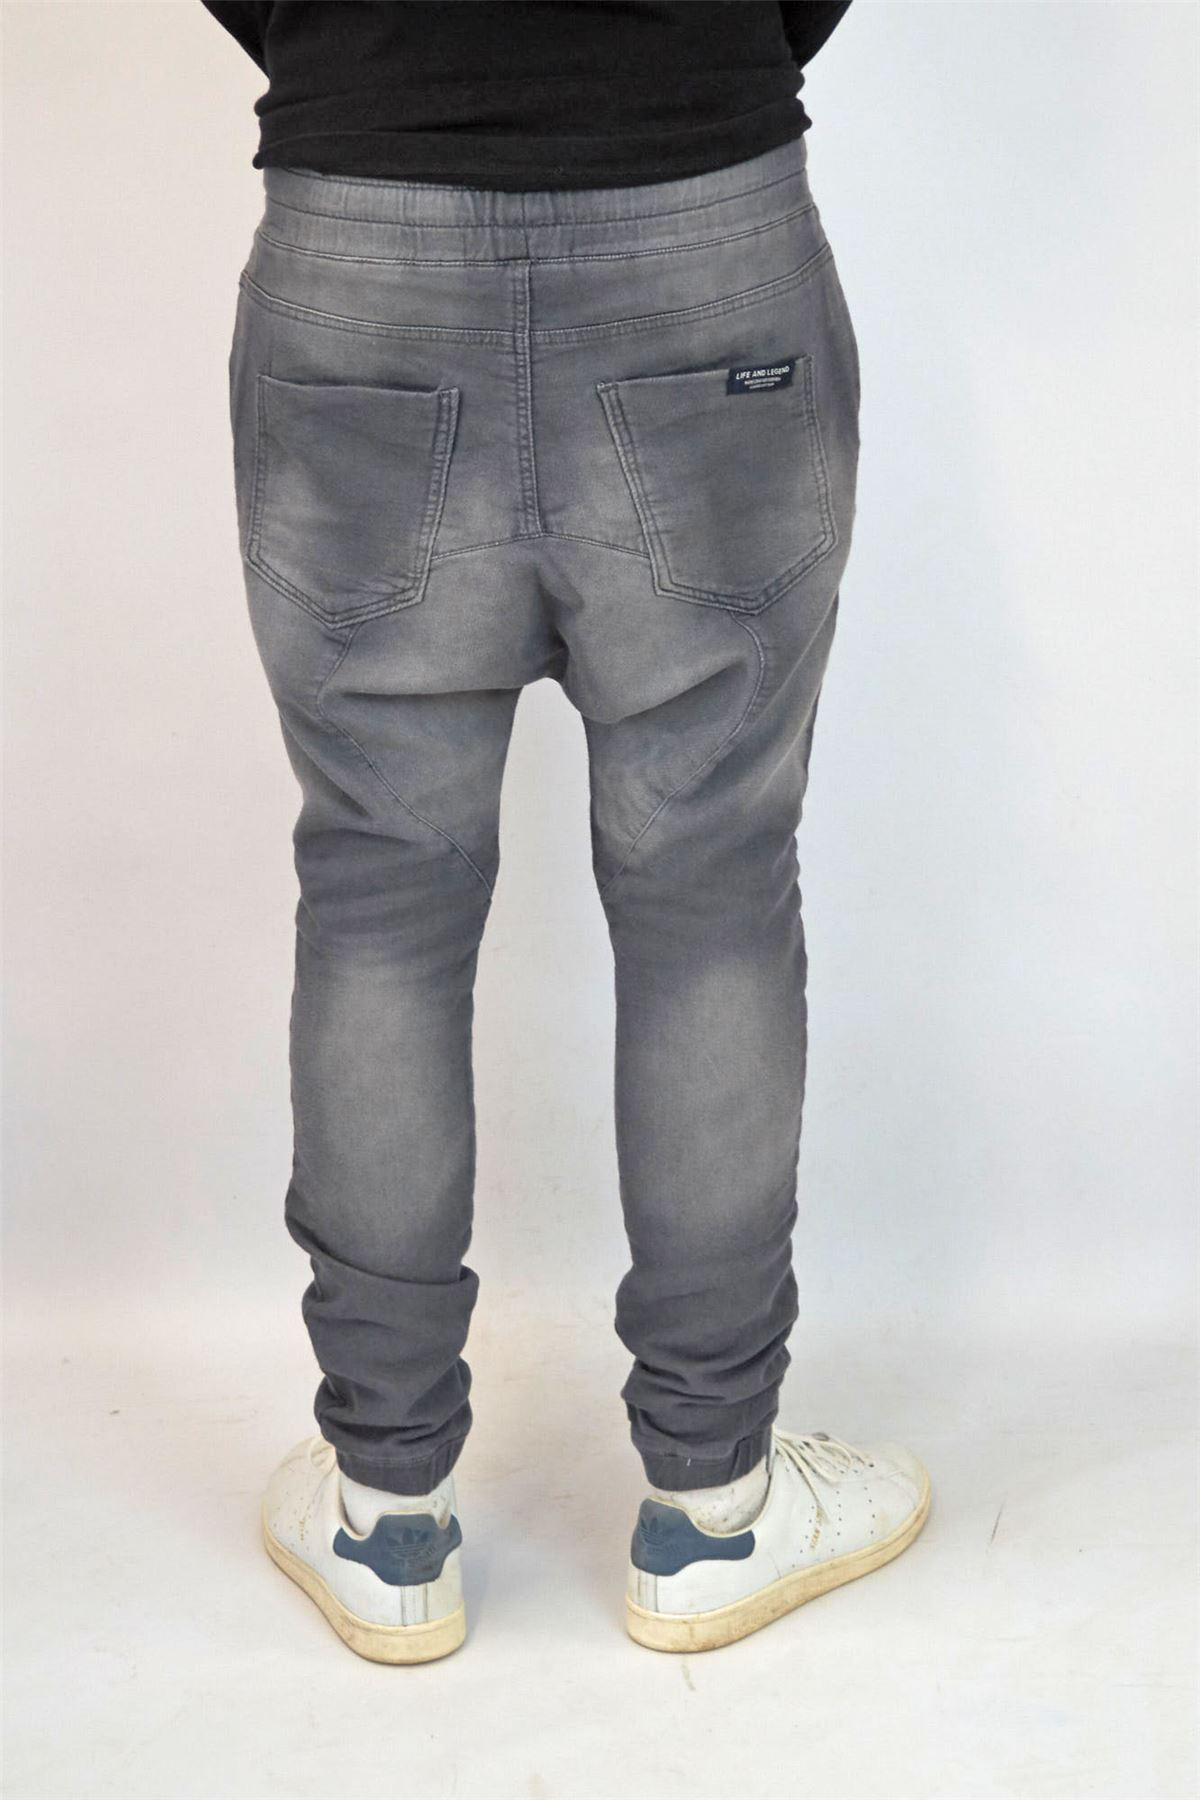 LIFE AND LEGEND Mens Drop Crotch Jogger JeansSALEWas £25